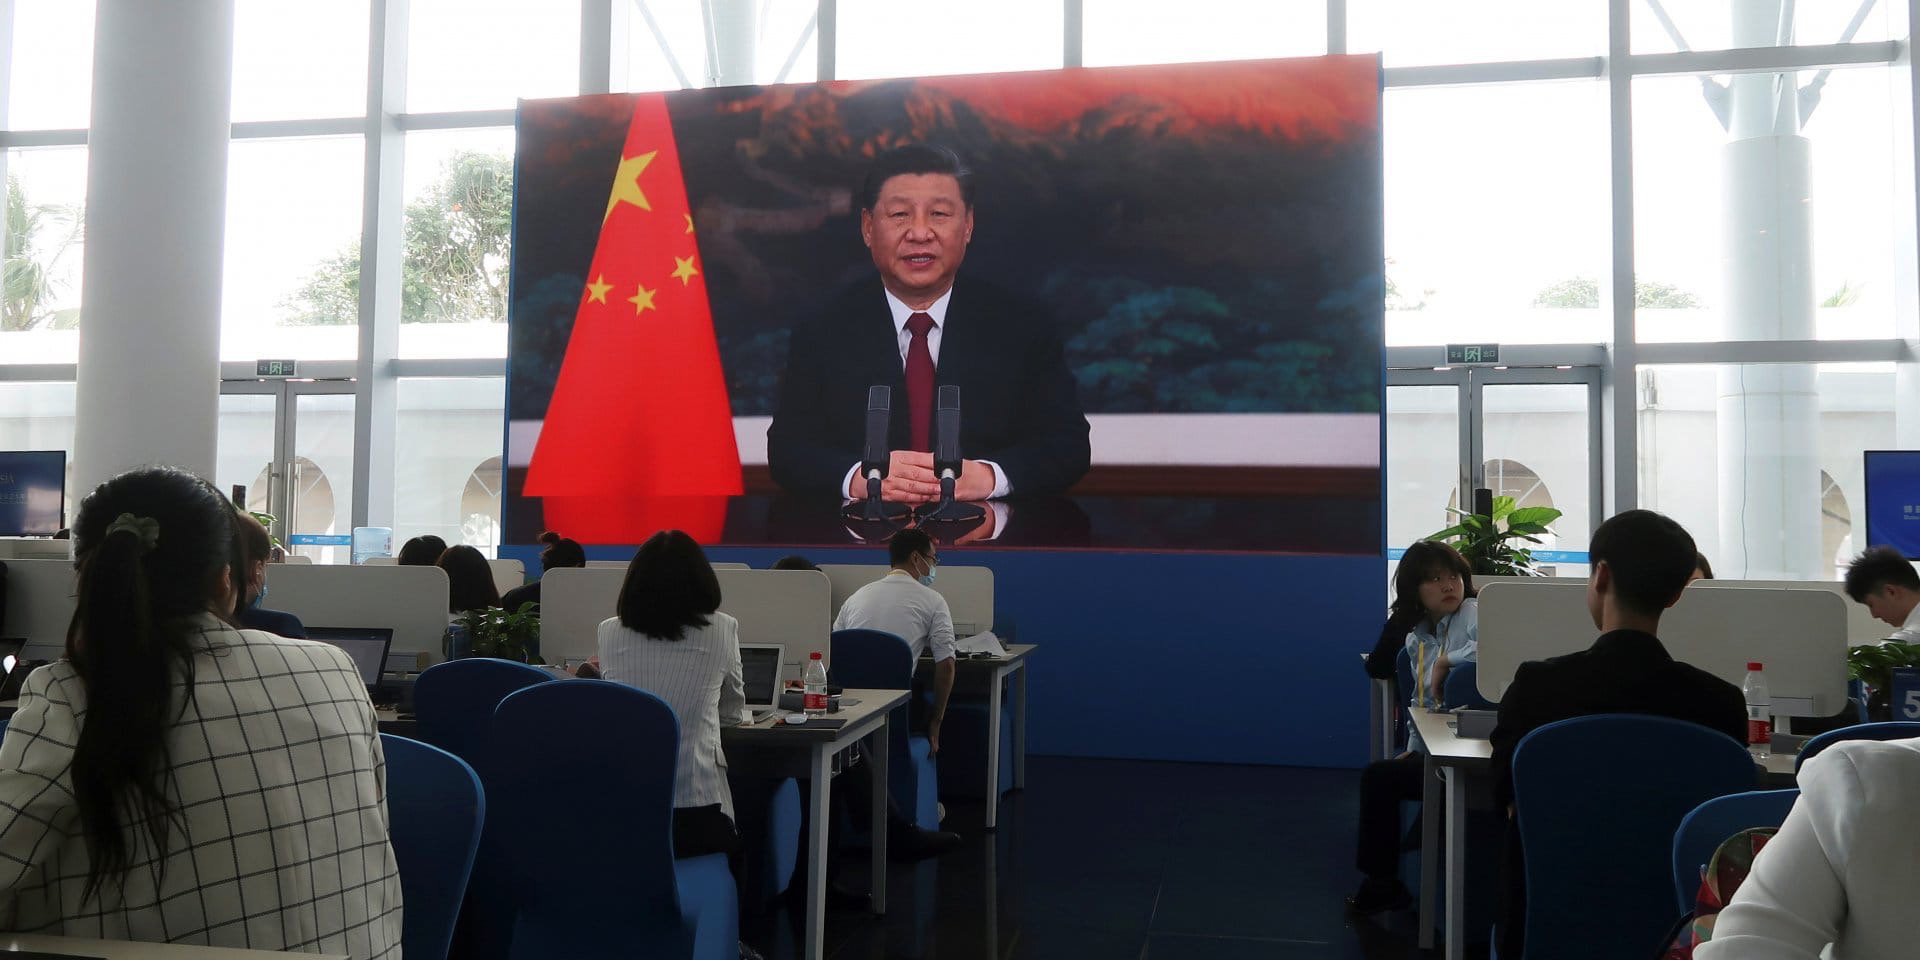 Xi Jinping to attend Climate Summit